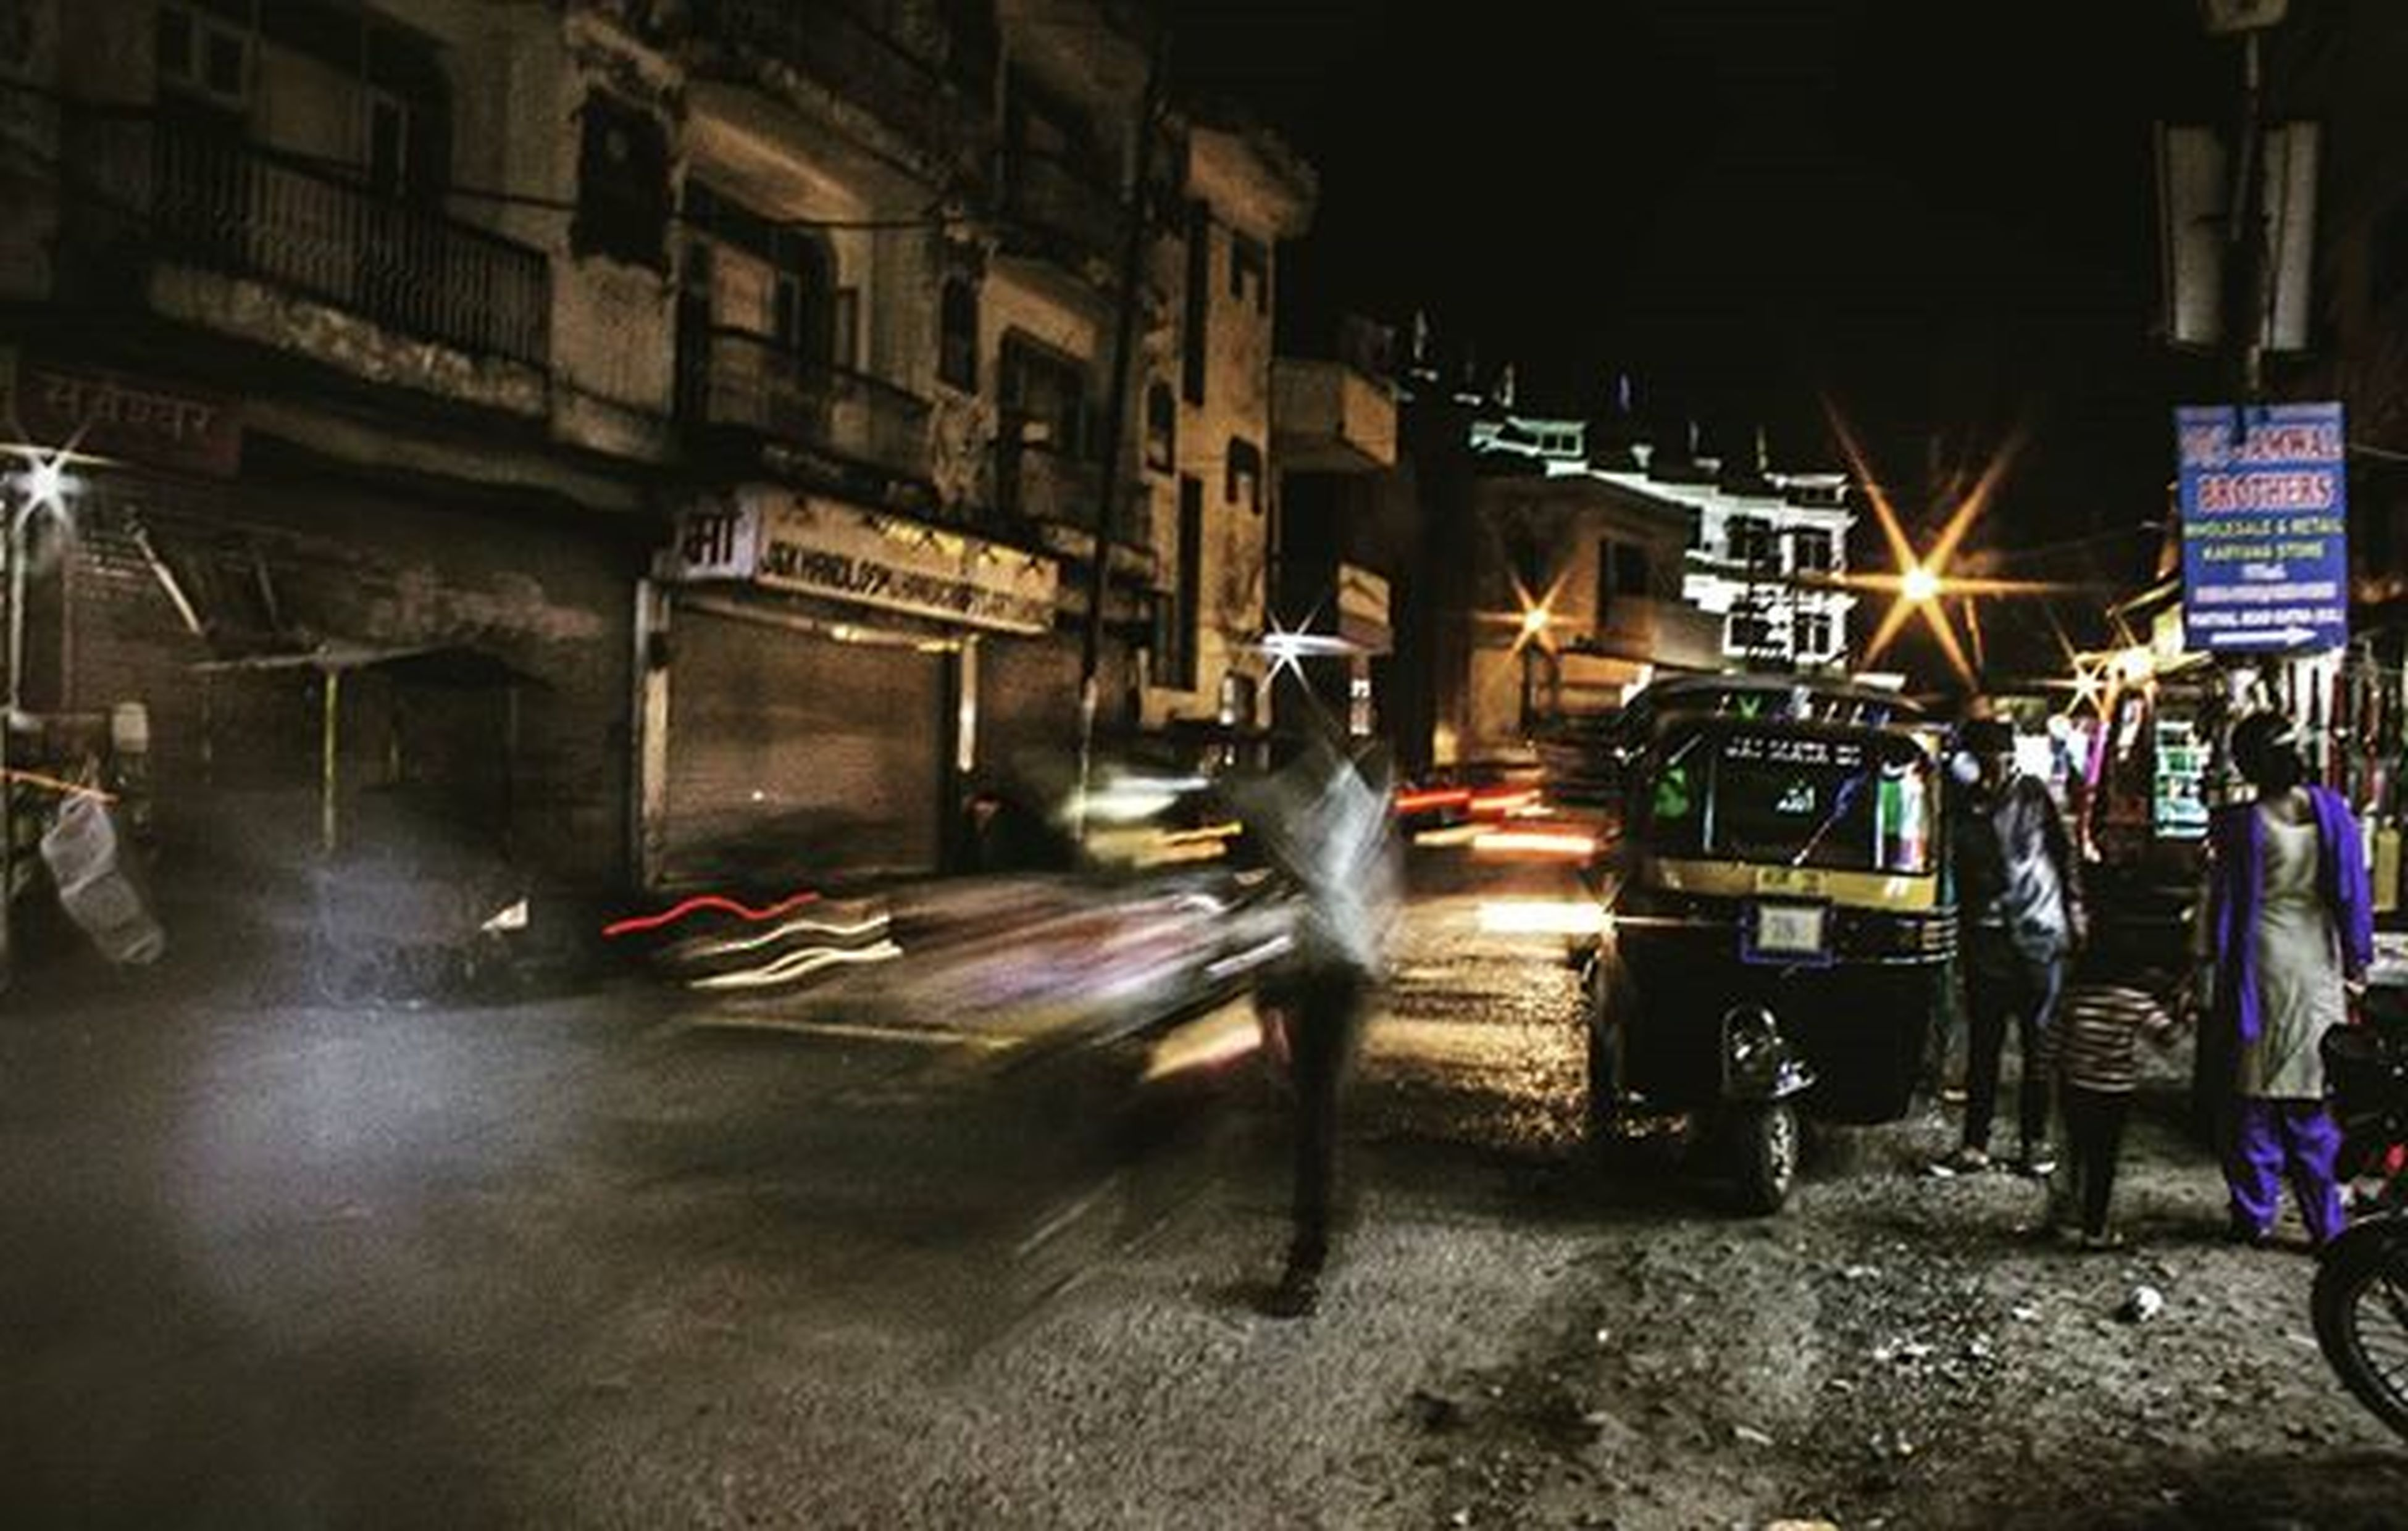 illuminated, men, night, lifestyles, built structure, architecture, person, leisure activity, transportation, indoors, full length, street, building exterior, mode of transport, abandoned, occupation, medium group of people, land vehicle